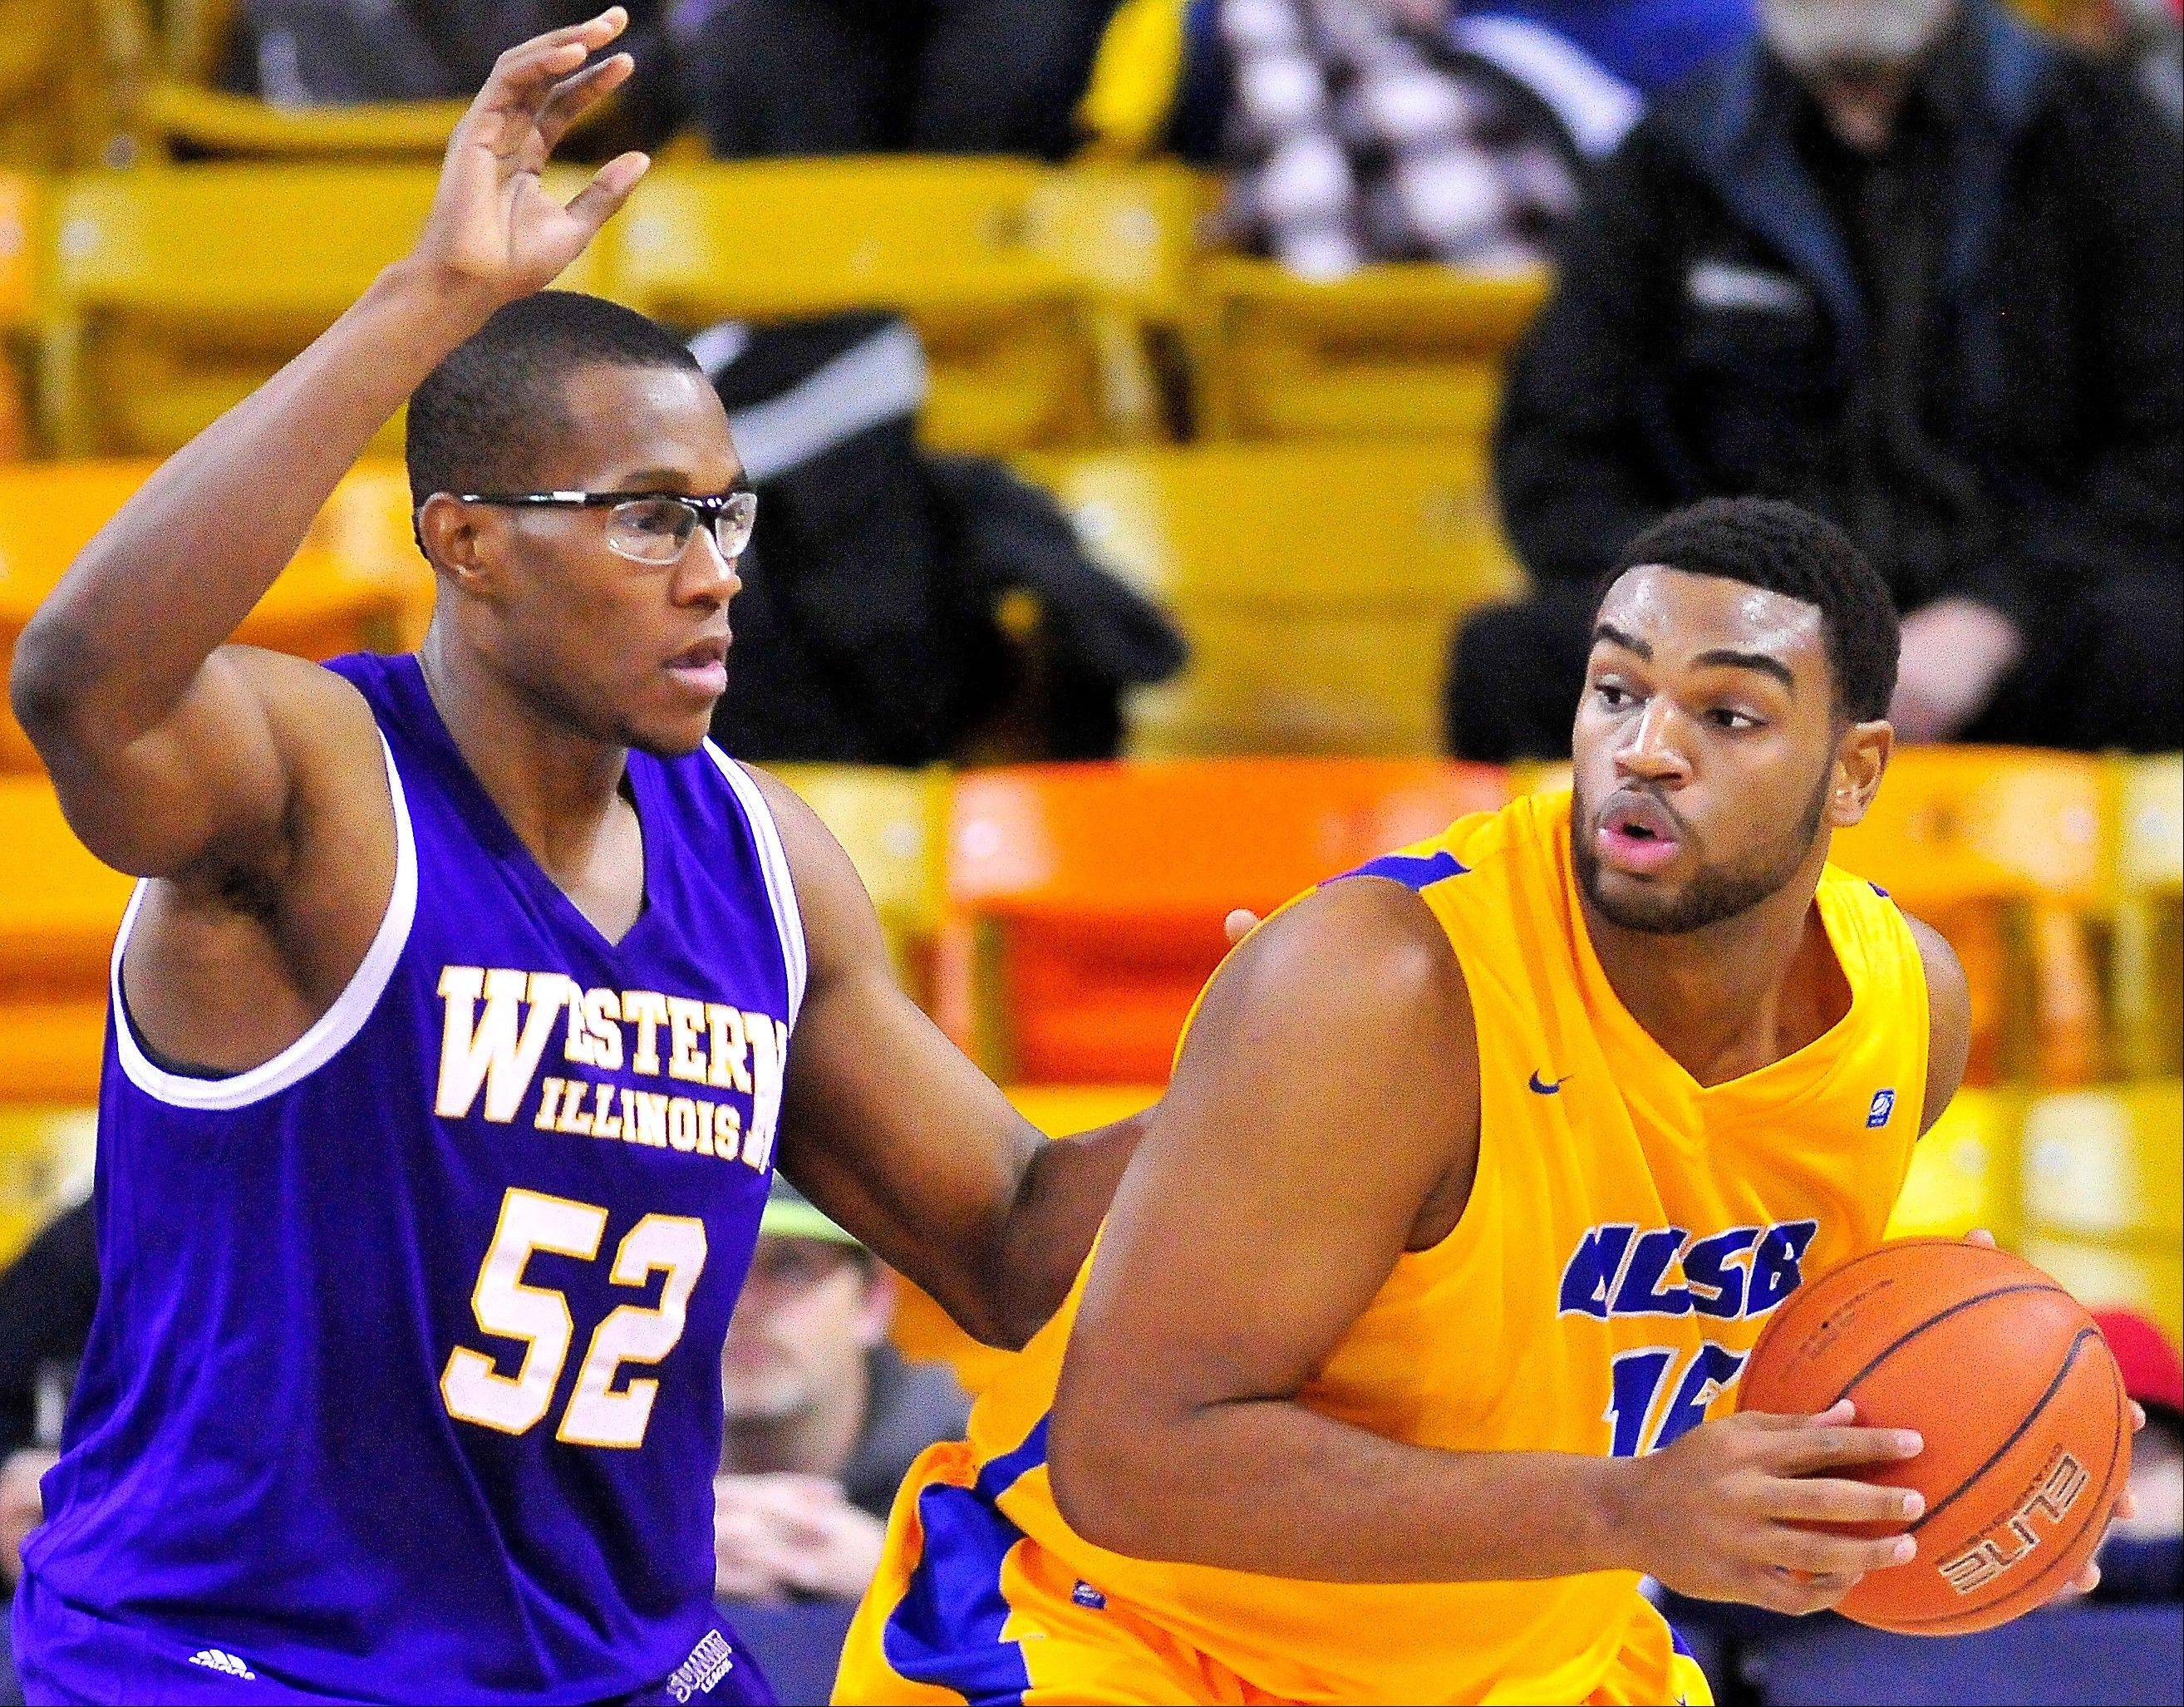 UC Santa Barbara�s Alan Williams looks to make a pass while being guarded by Western Illinois� Michael Ochereobia on Saturday in Logan, Utah.